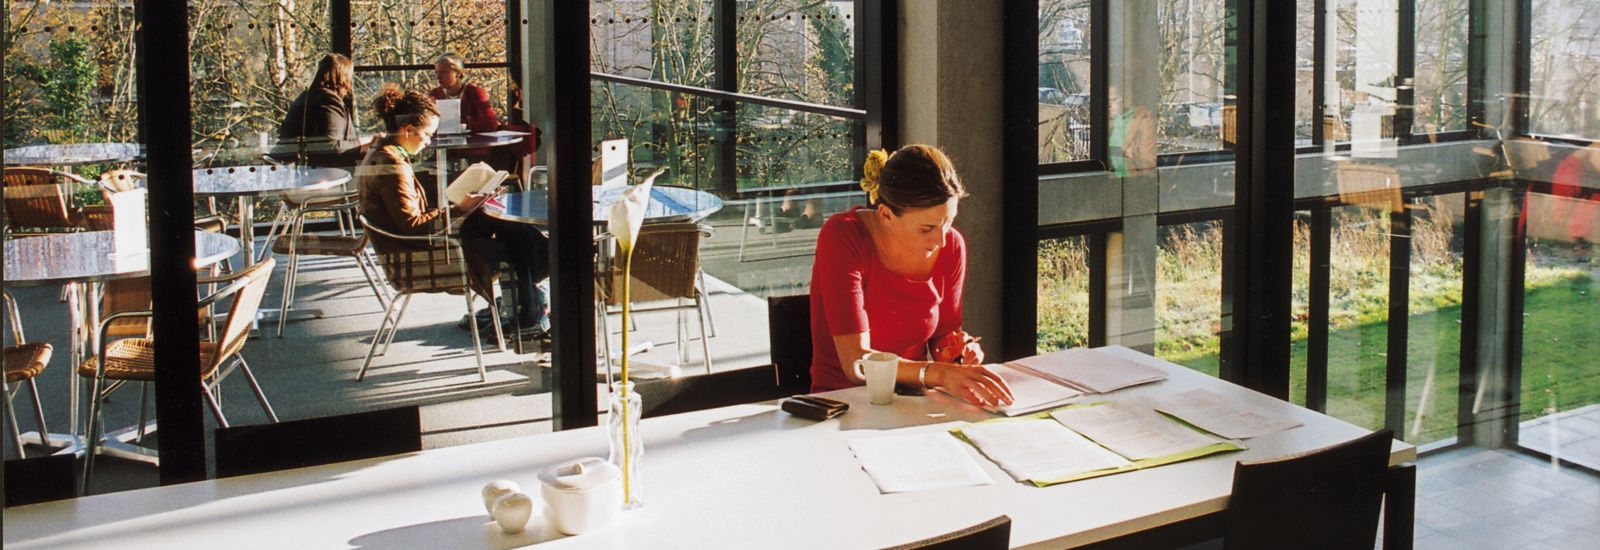 Students studying in a glass-walled cafe